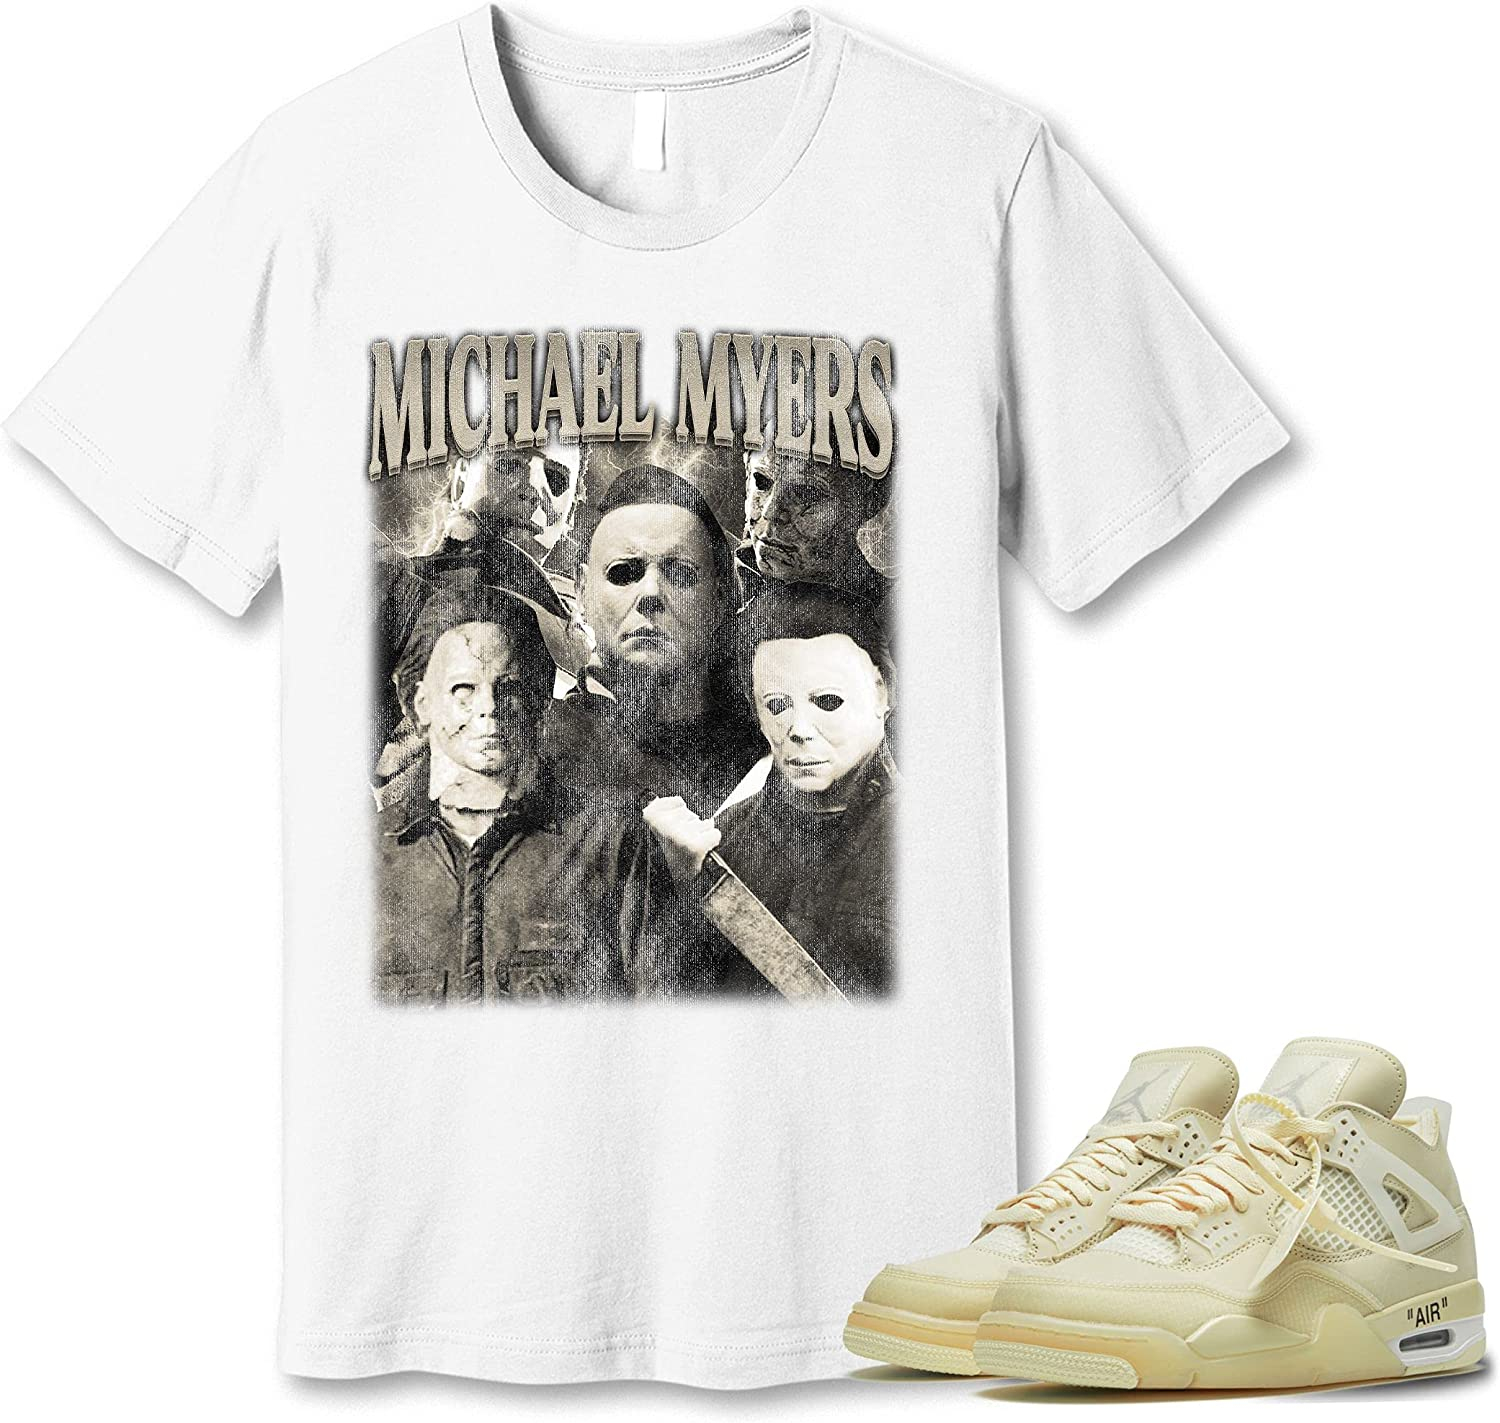 #Michael #Myer We OFFer at Animer and price revision cheap prices T-Shirt to Match Jordan Snkr White Off- 4 Sneaker